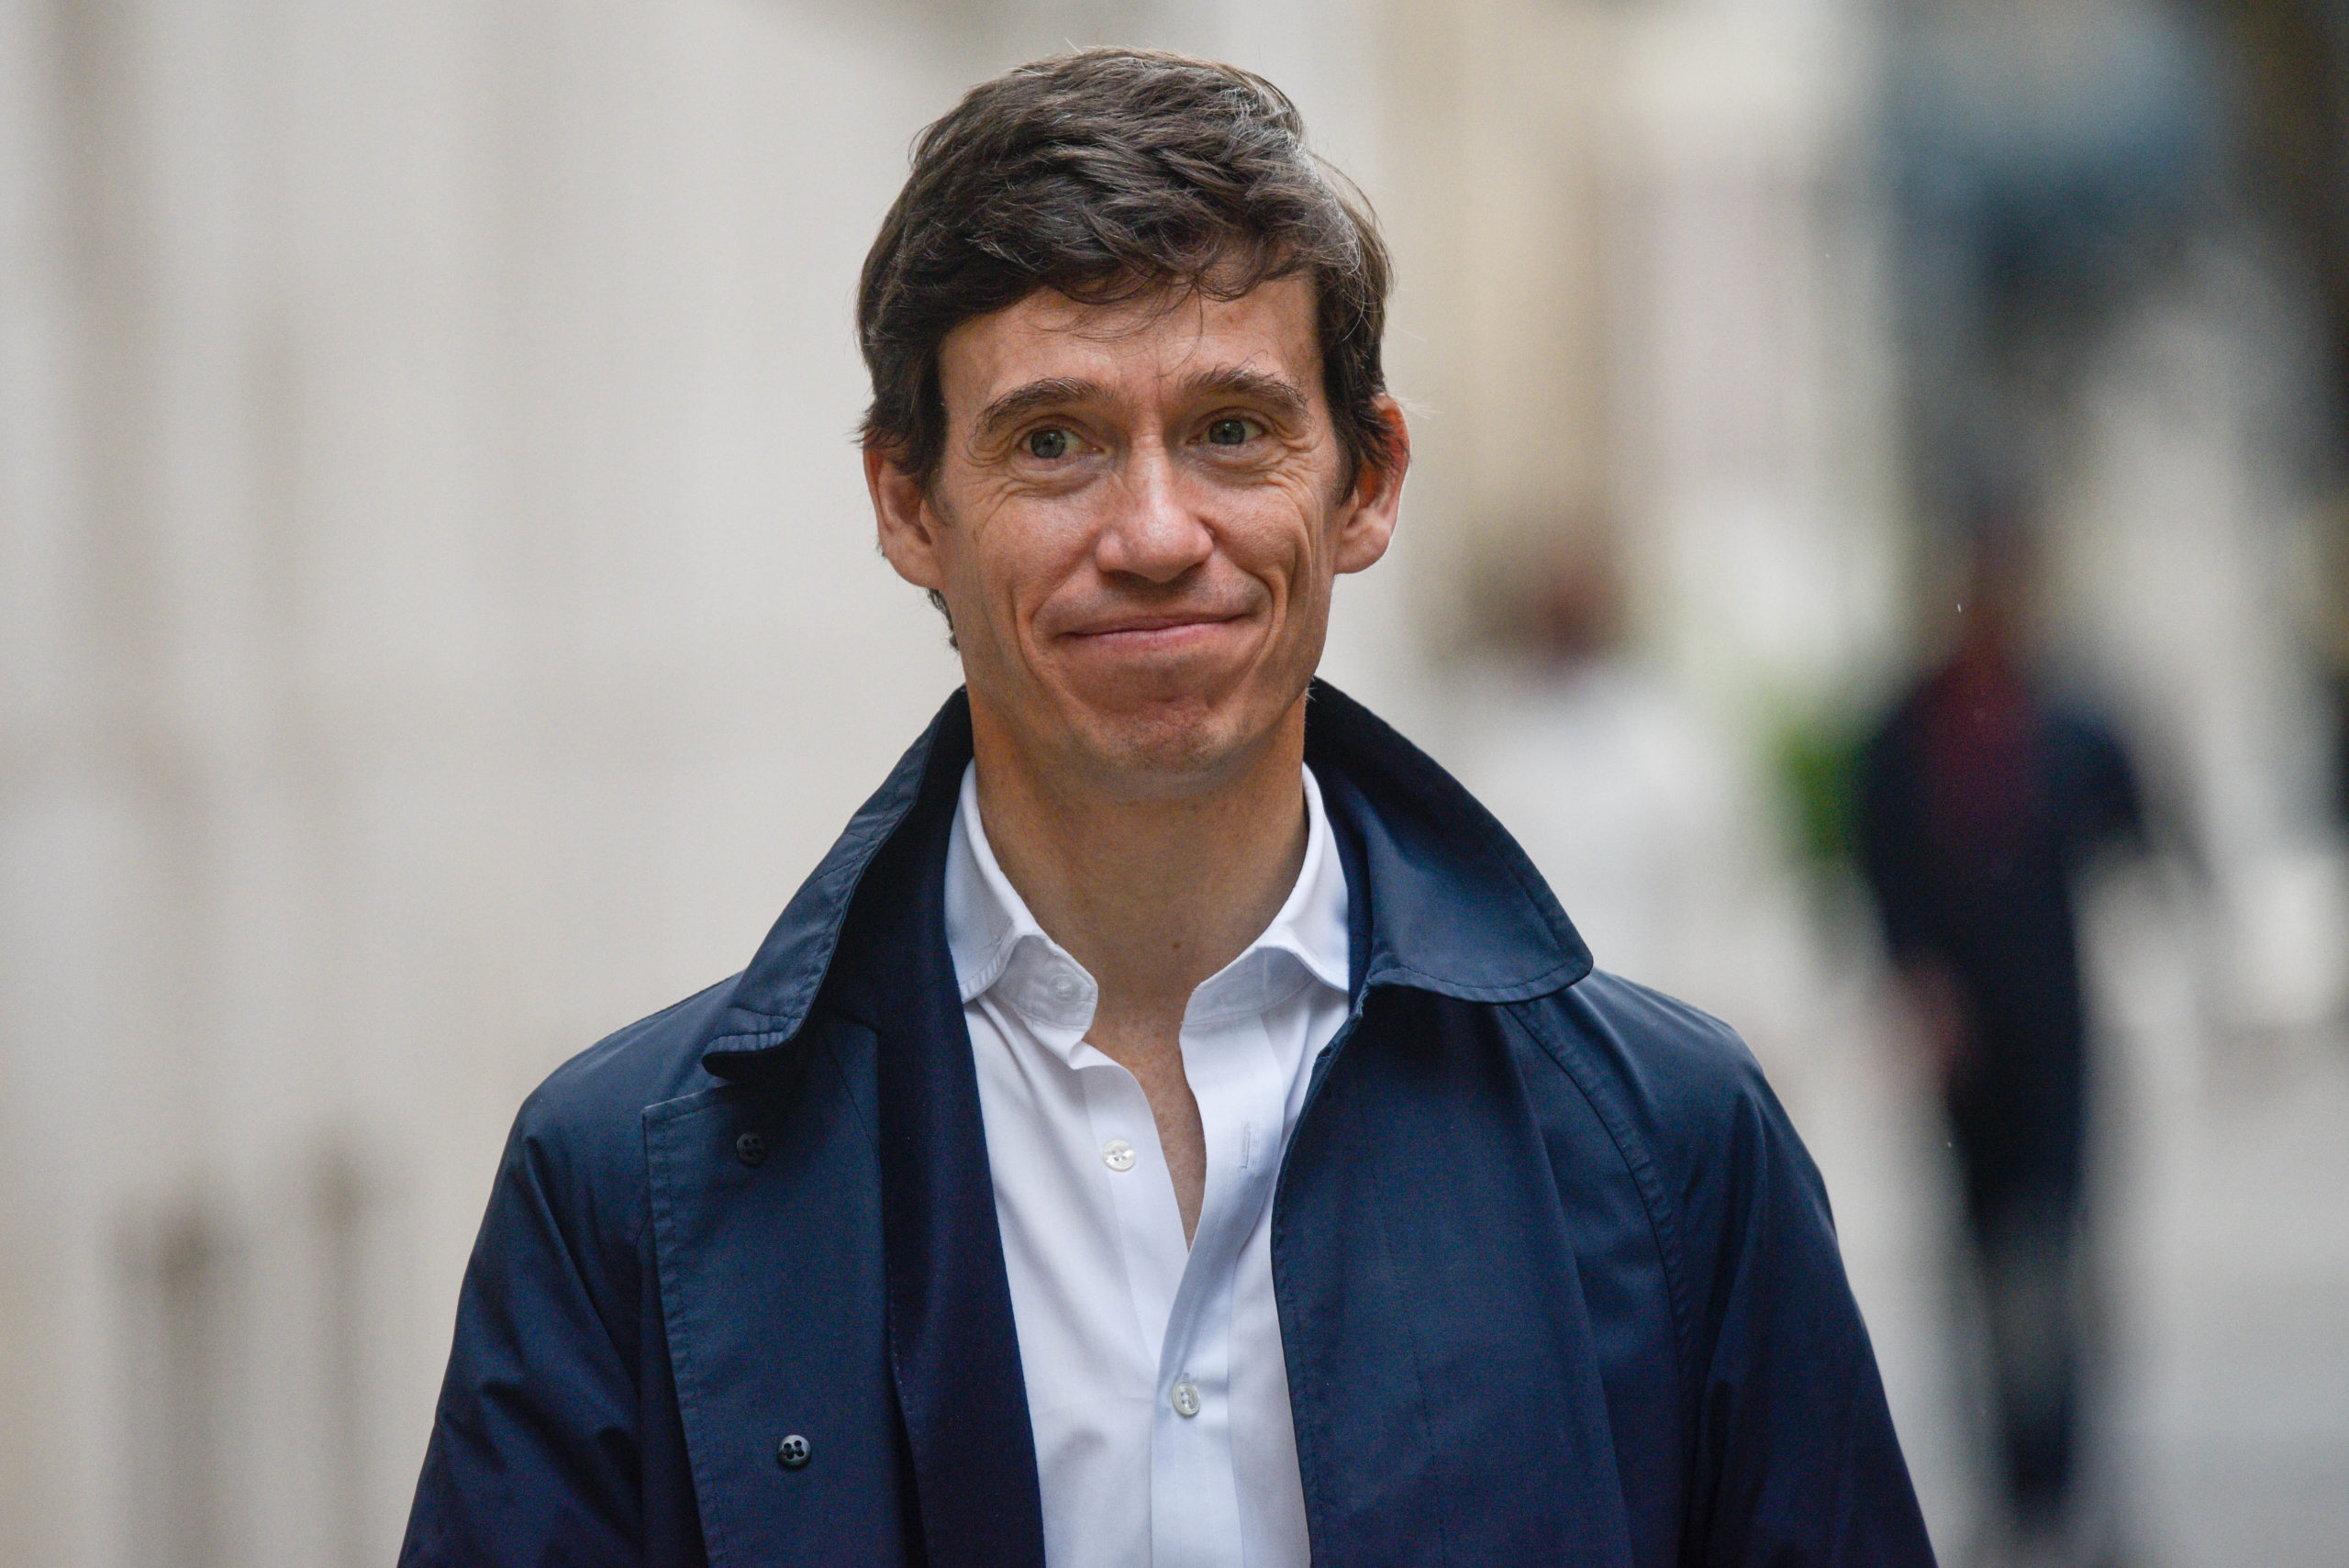 Ministry of Justice categorically denies Rory Stewart's preposterous claim that trans prisoners are 'raping female prison staff'